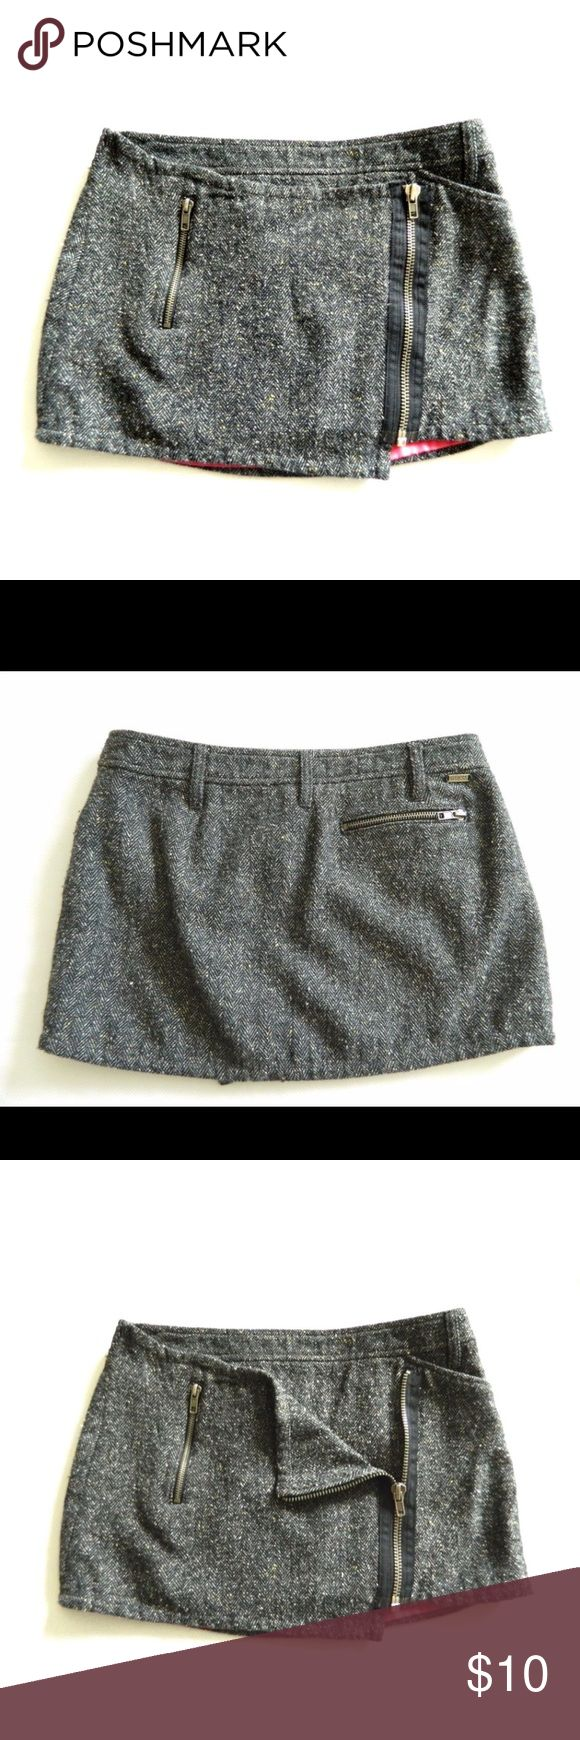 Guess tweed asymmetric micro mini skirt Cute Guess tweed mini skirt. Asymmetric zipper on the front. Worn but in great condition Guess Skirts Mini